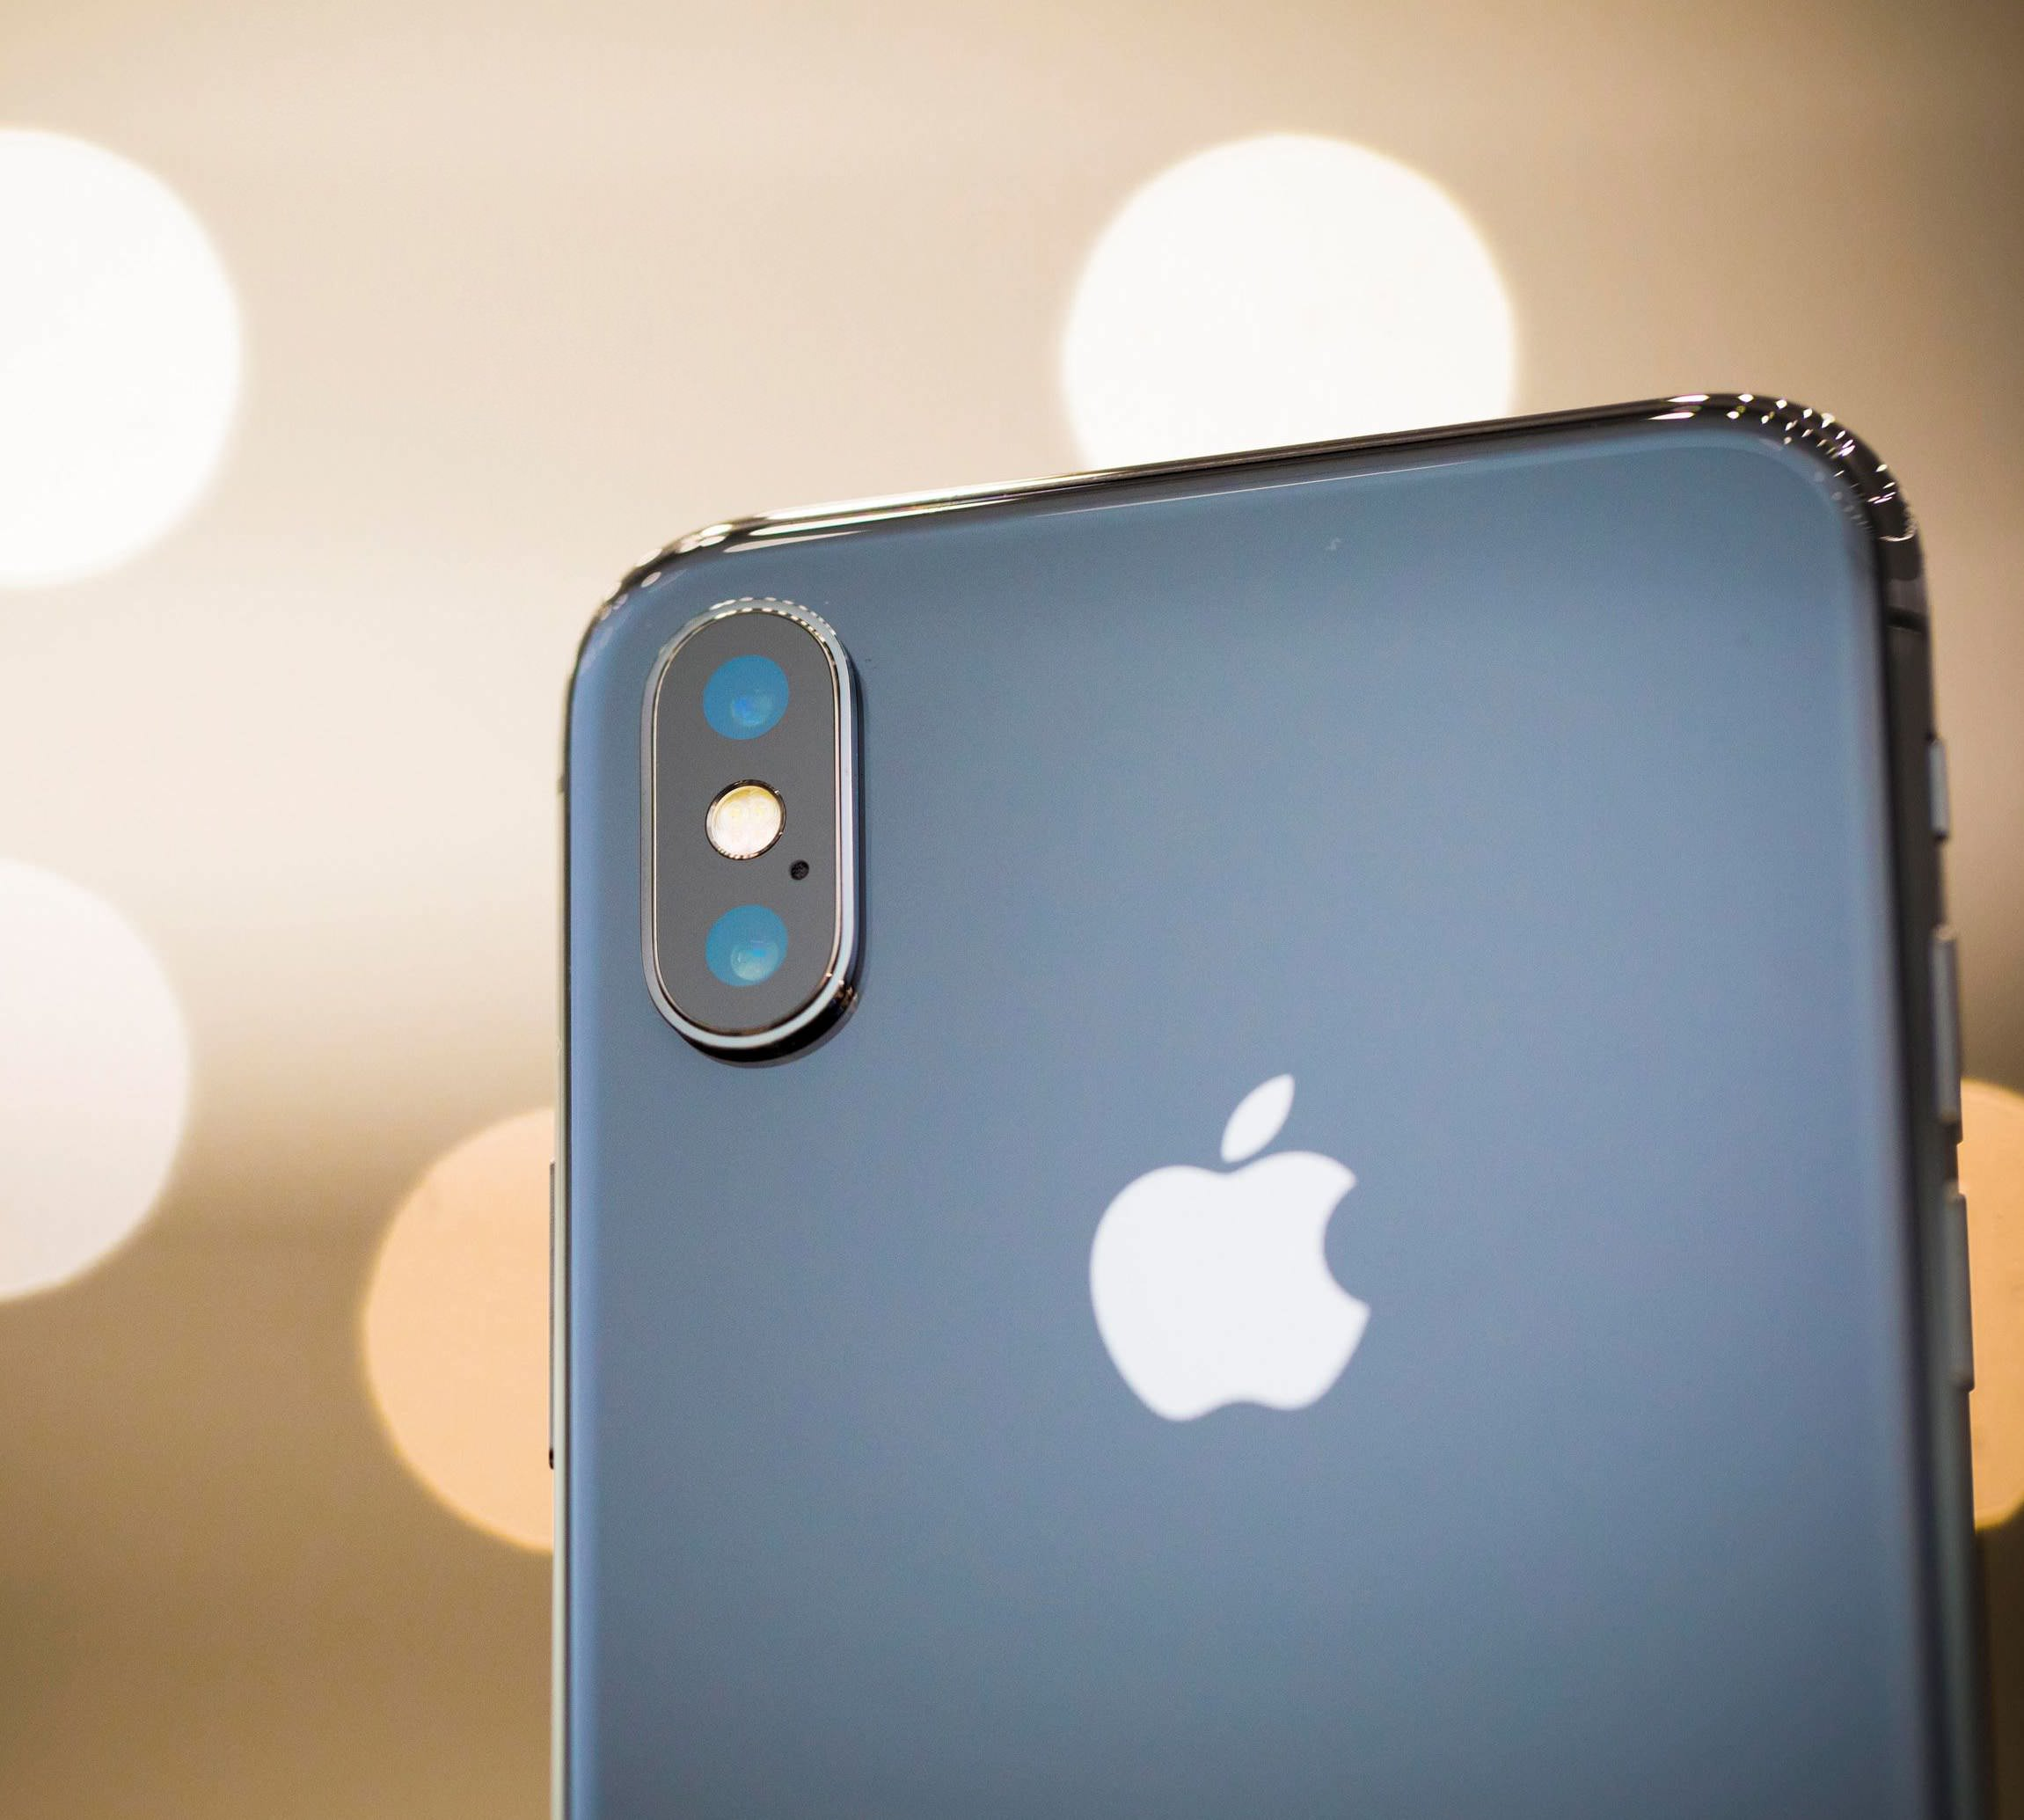 apple prices strategies He can therefore purchase 20 apple shares, assuming the price is $100 let's  keep the  let's now create the apple option position to fit the trading strategy.